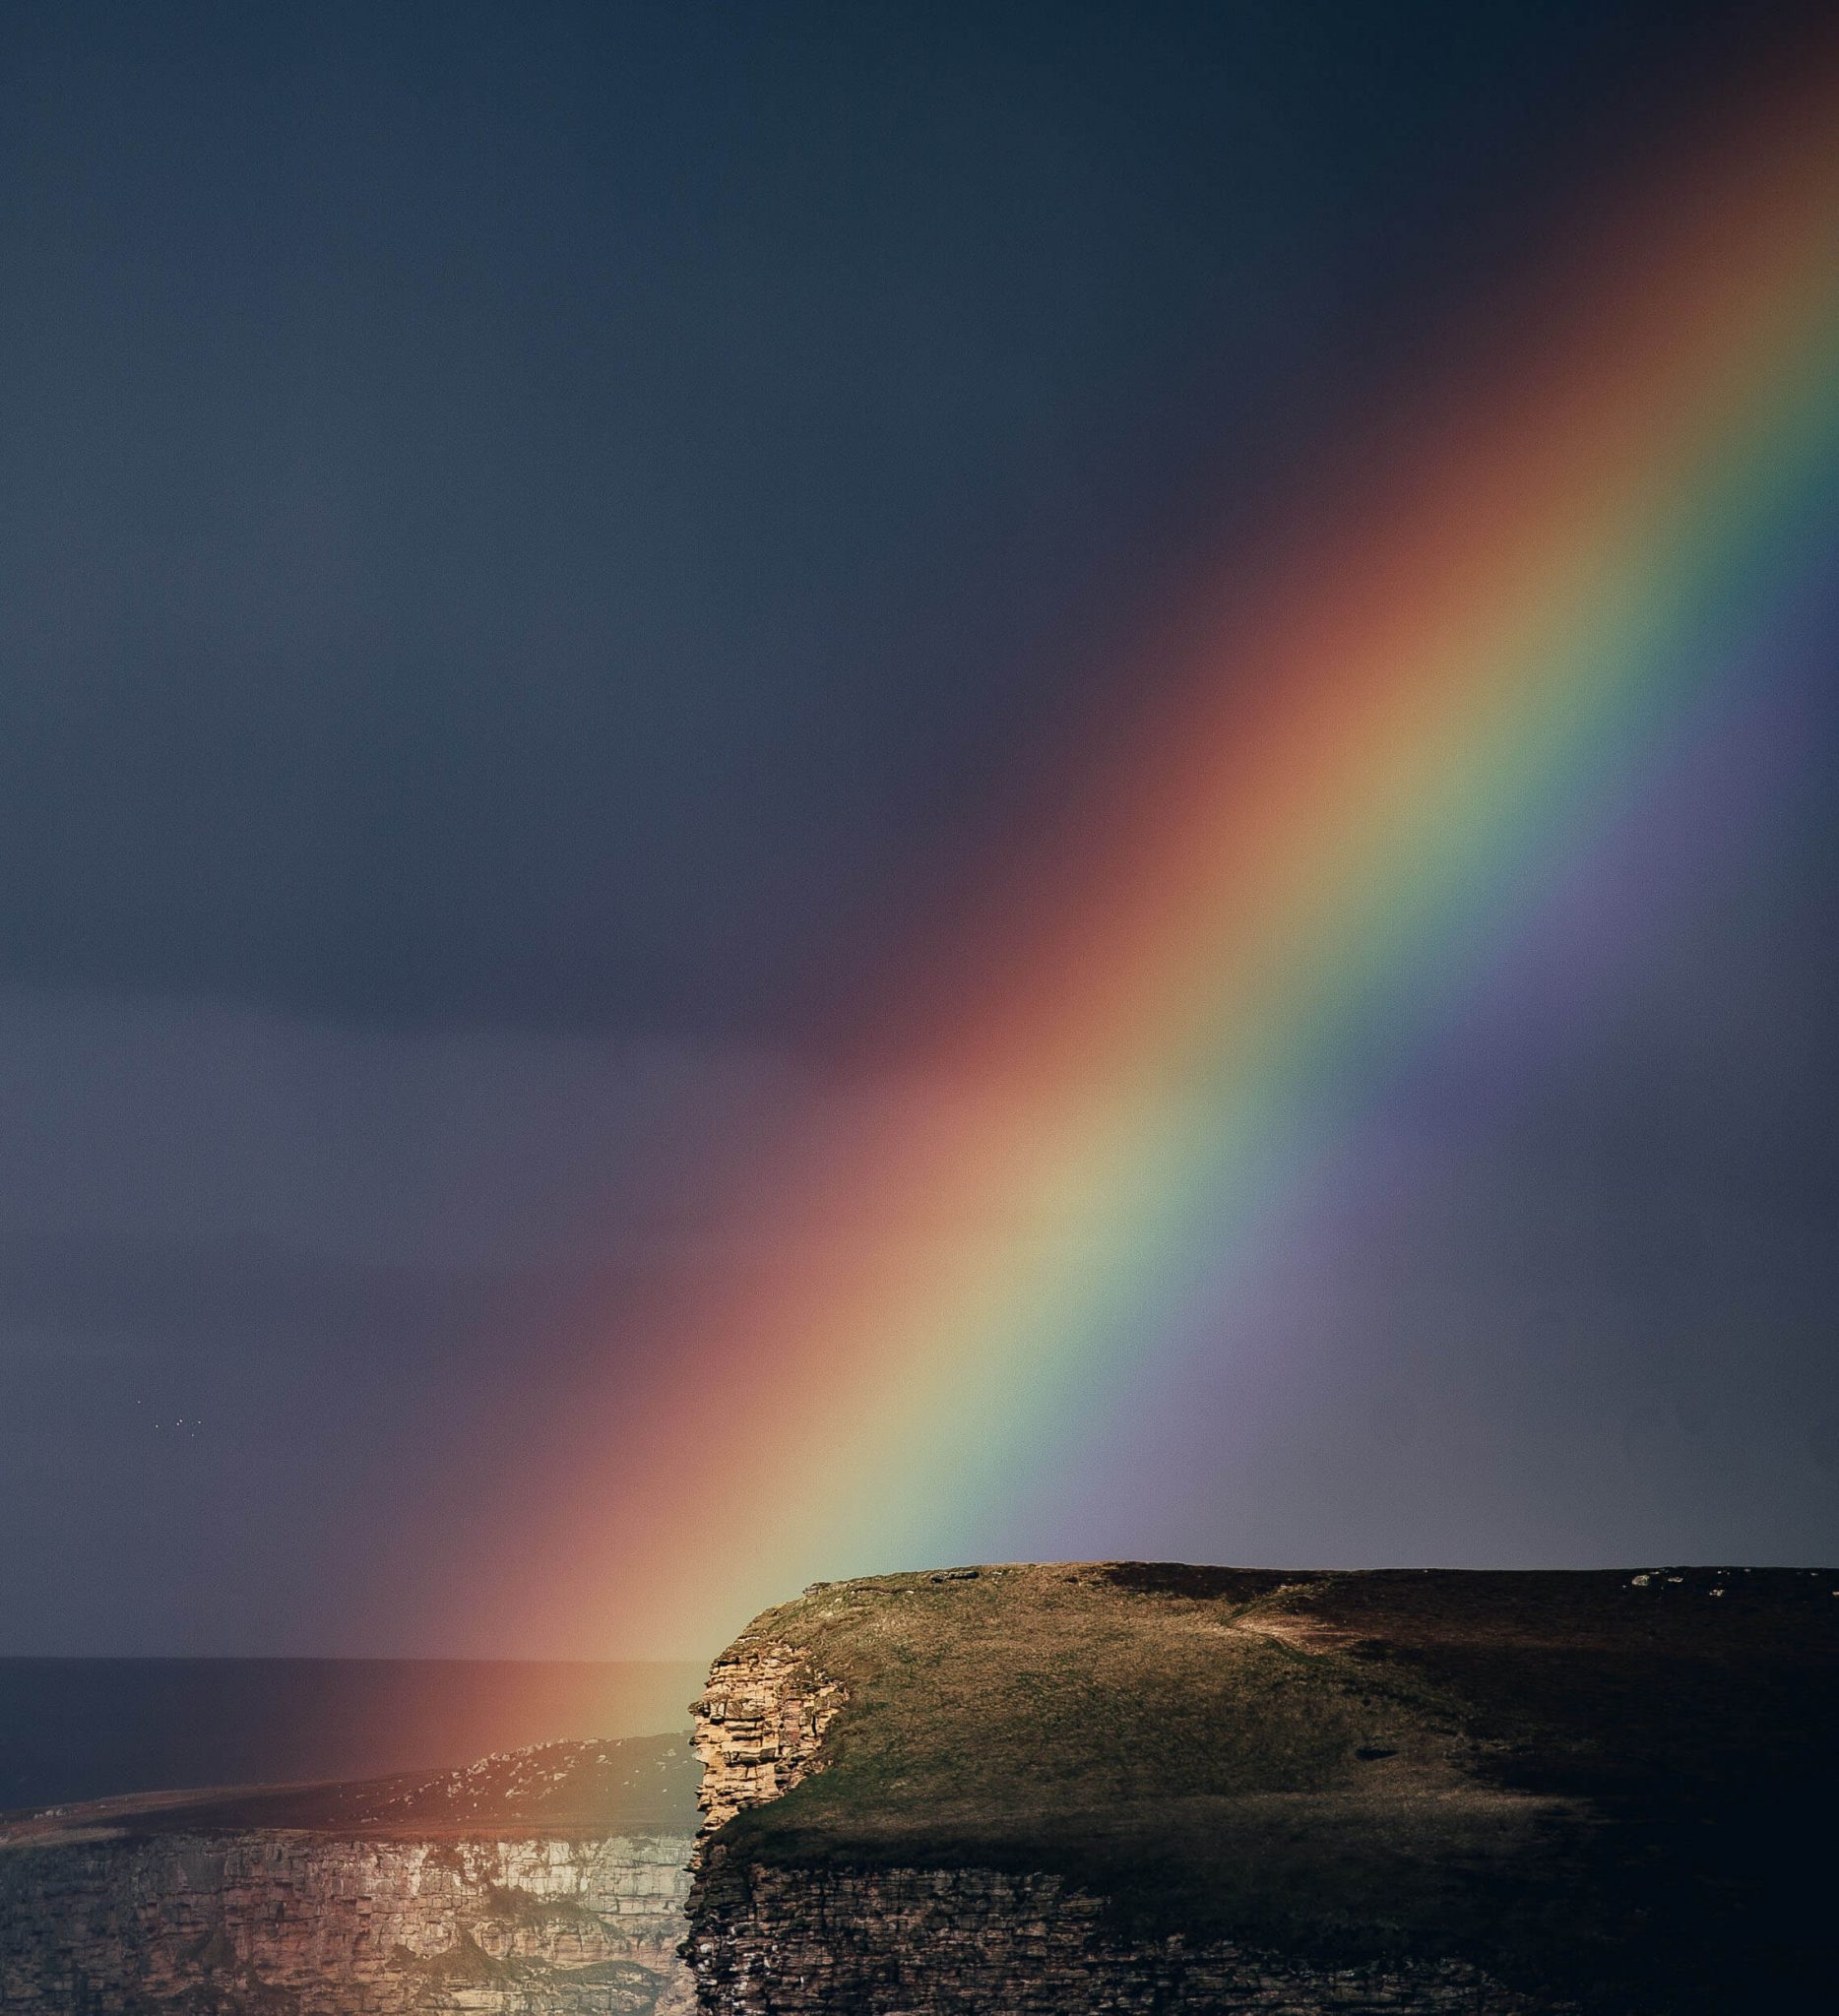 NoHypeRainbow-annie-spratt-156492-unsplash-copy-sm-NEW